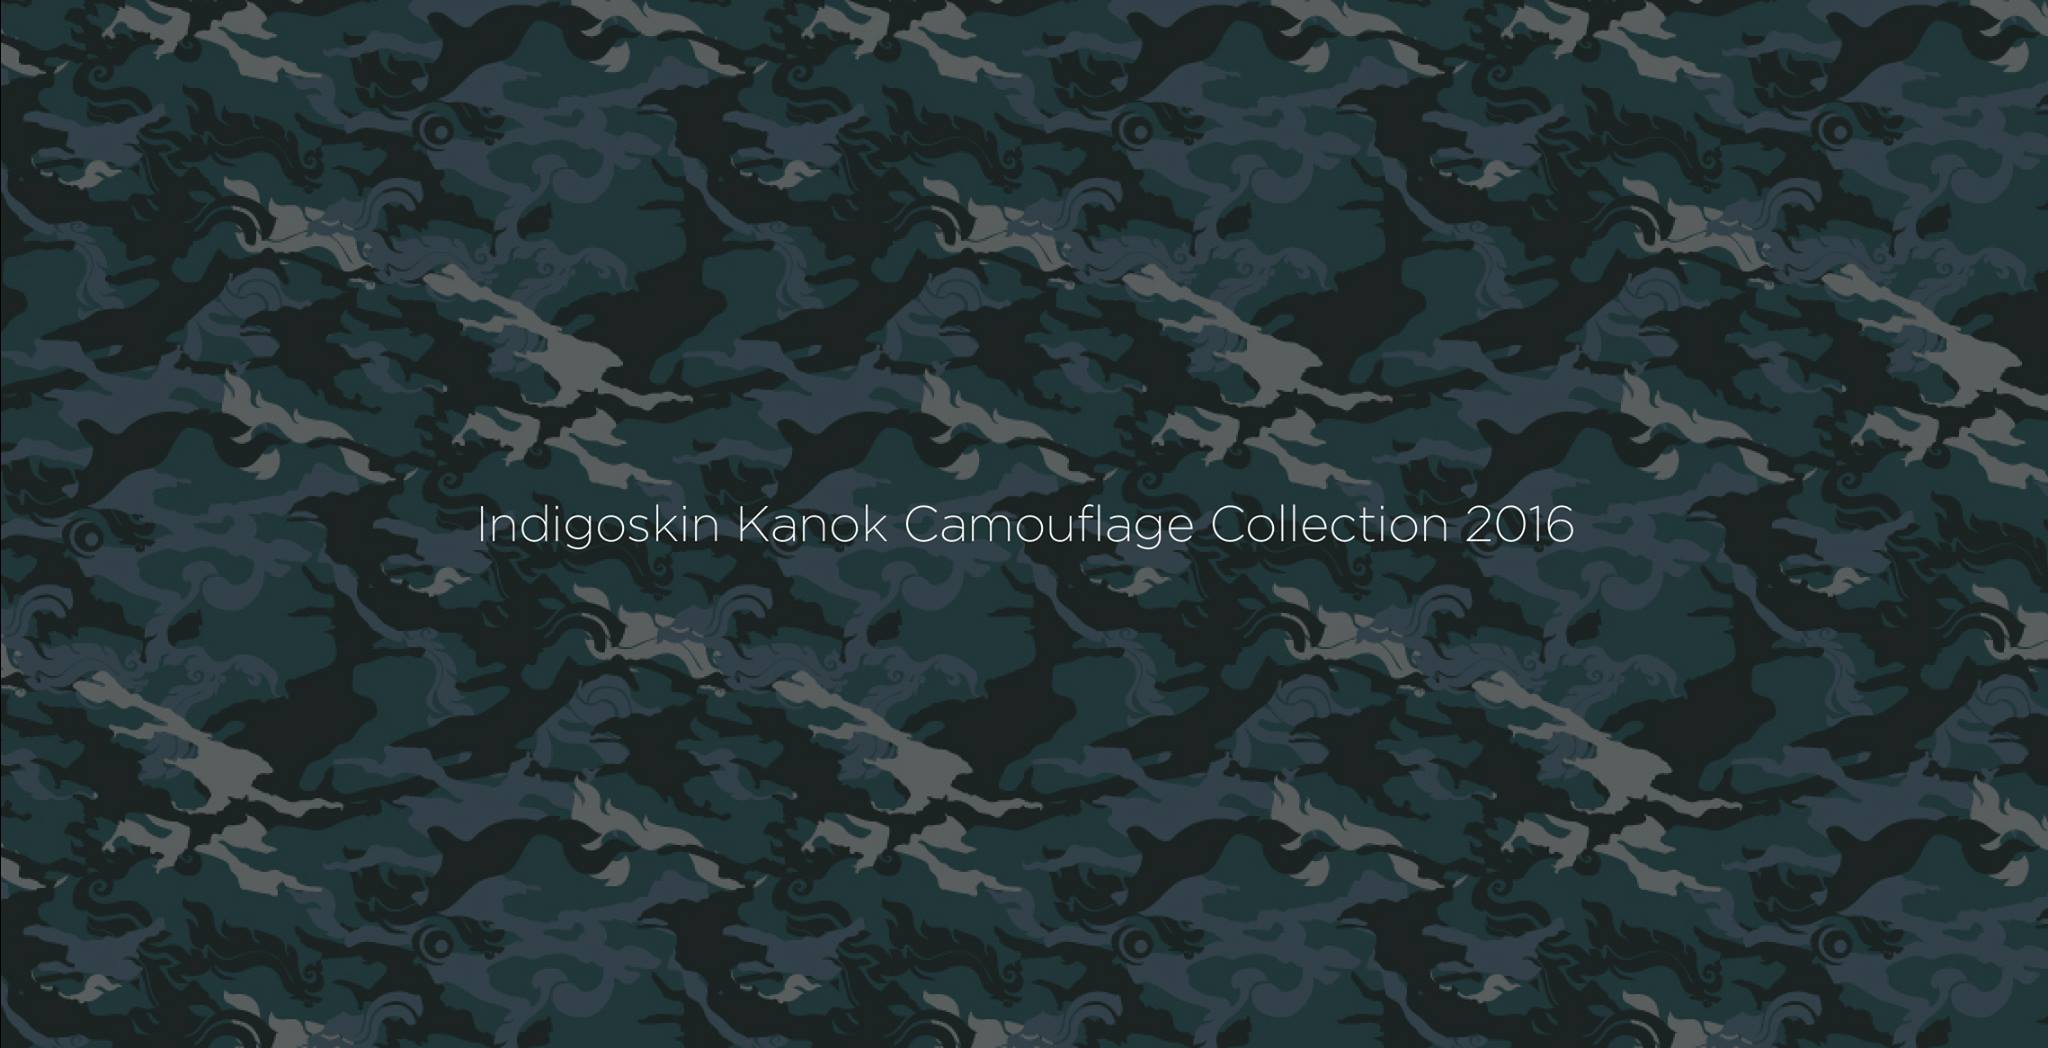 Kanok Camouflage Collection